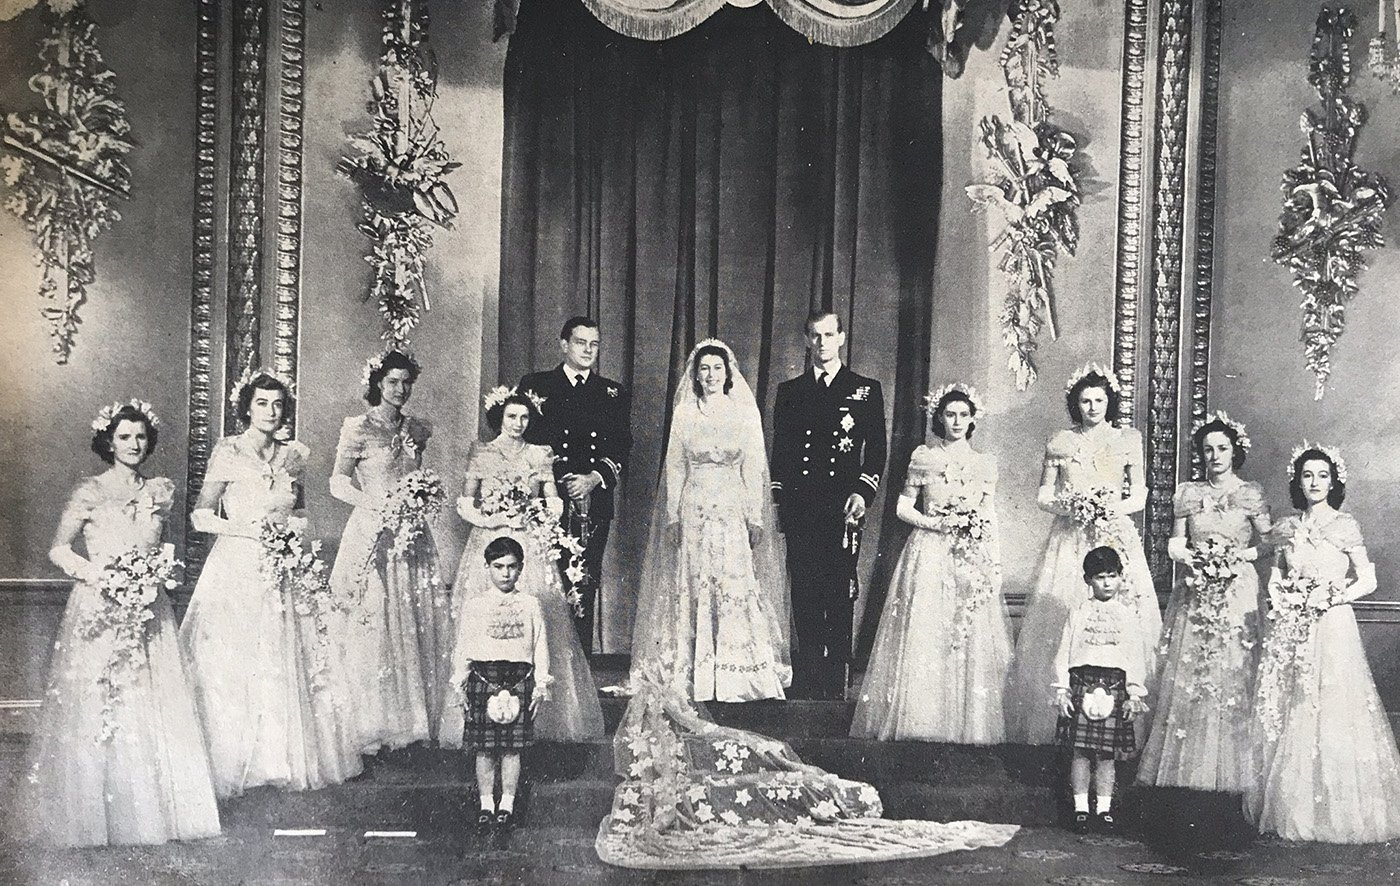 Une image du mariage de la reine Elizabeth II. | Photo : Getty Images